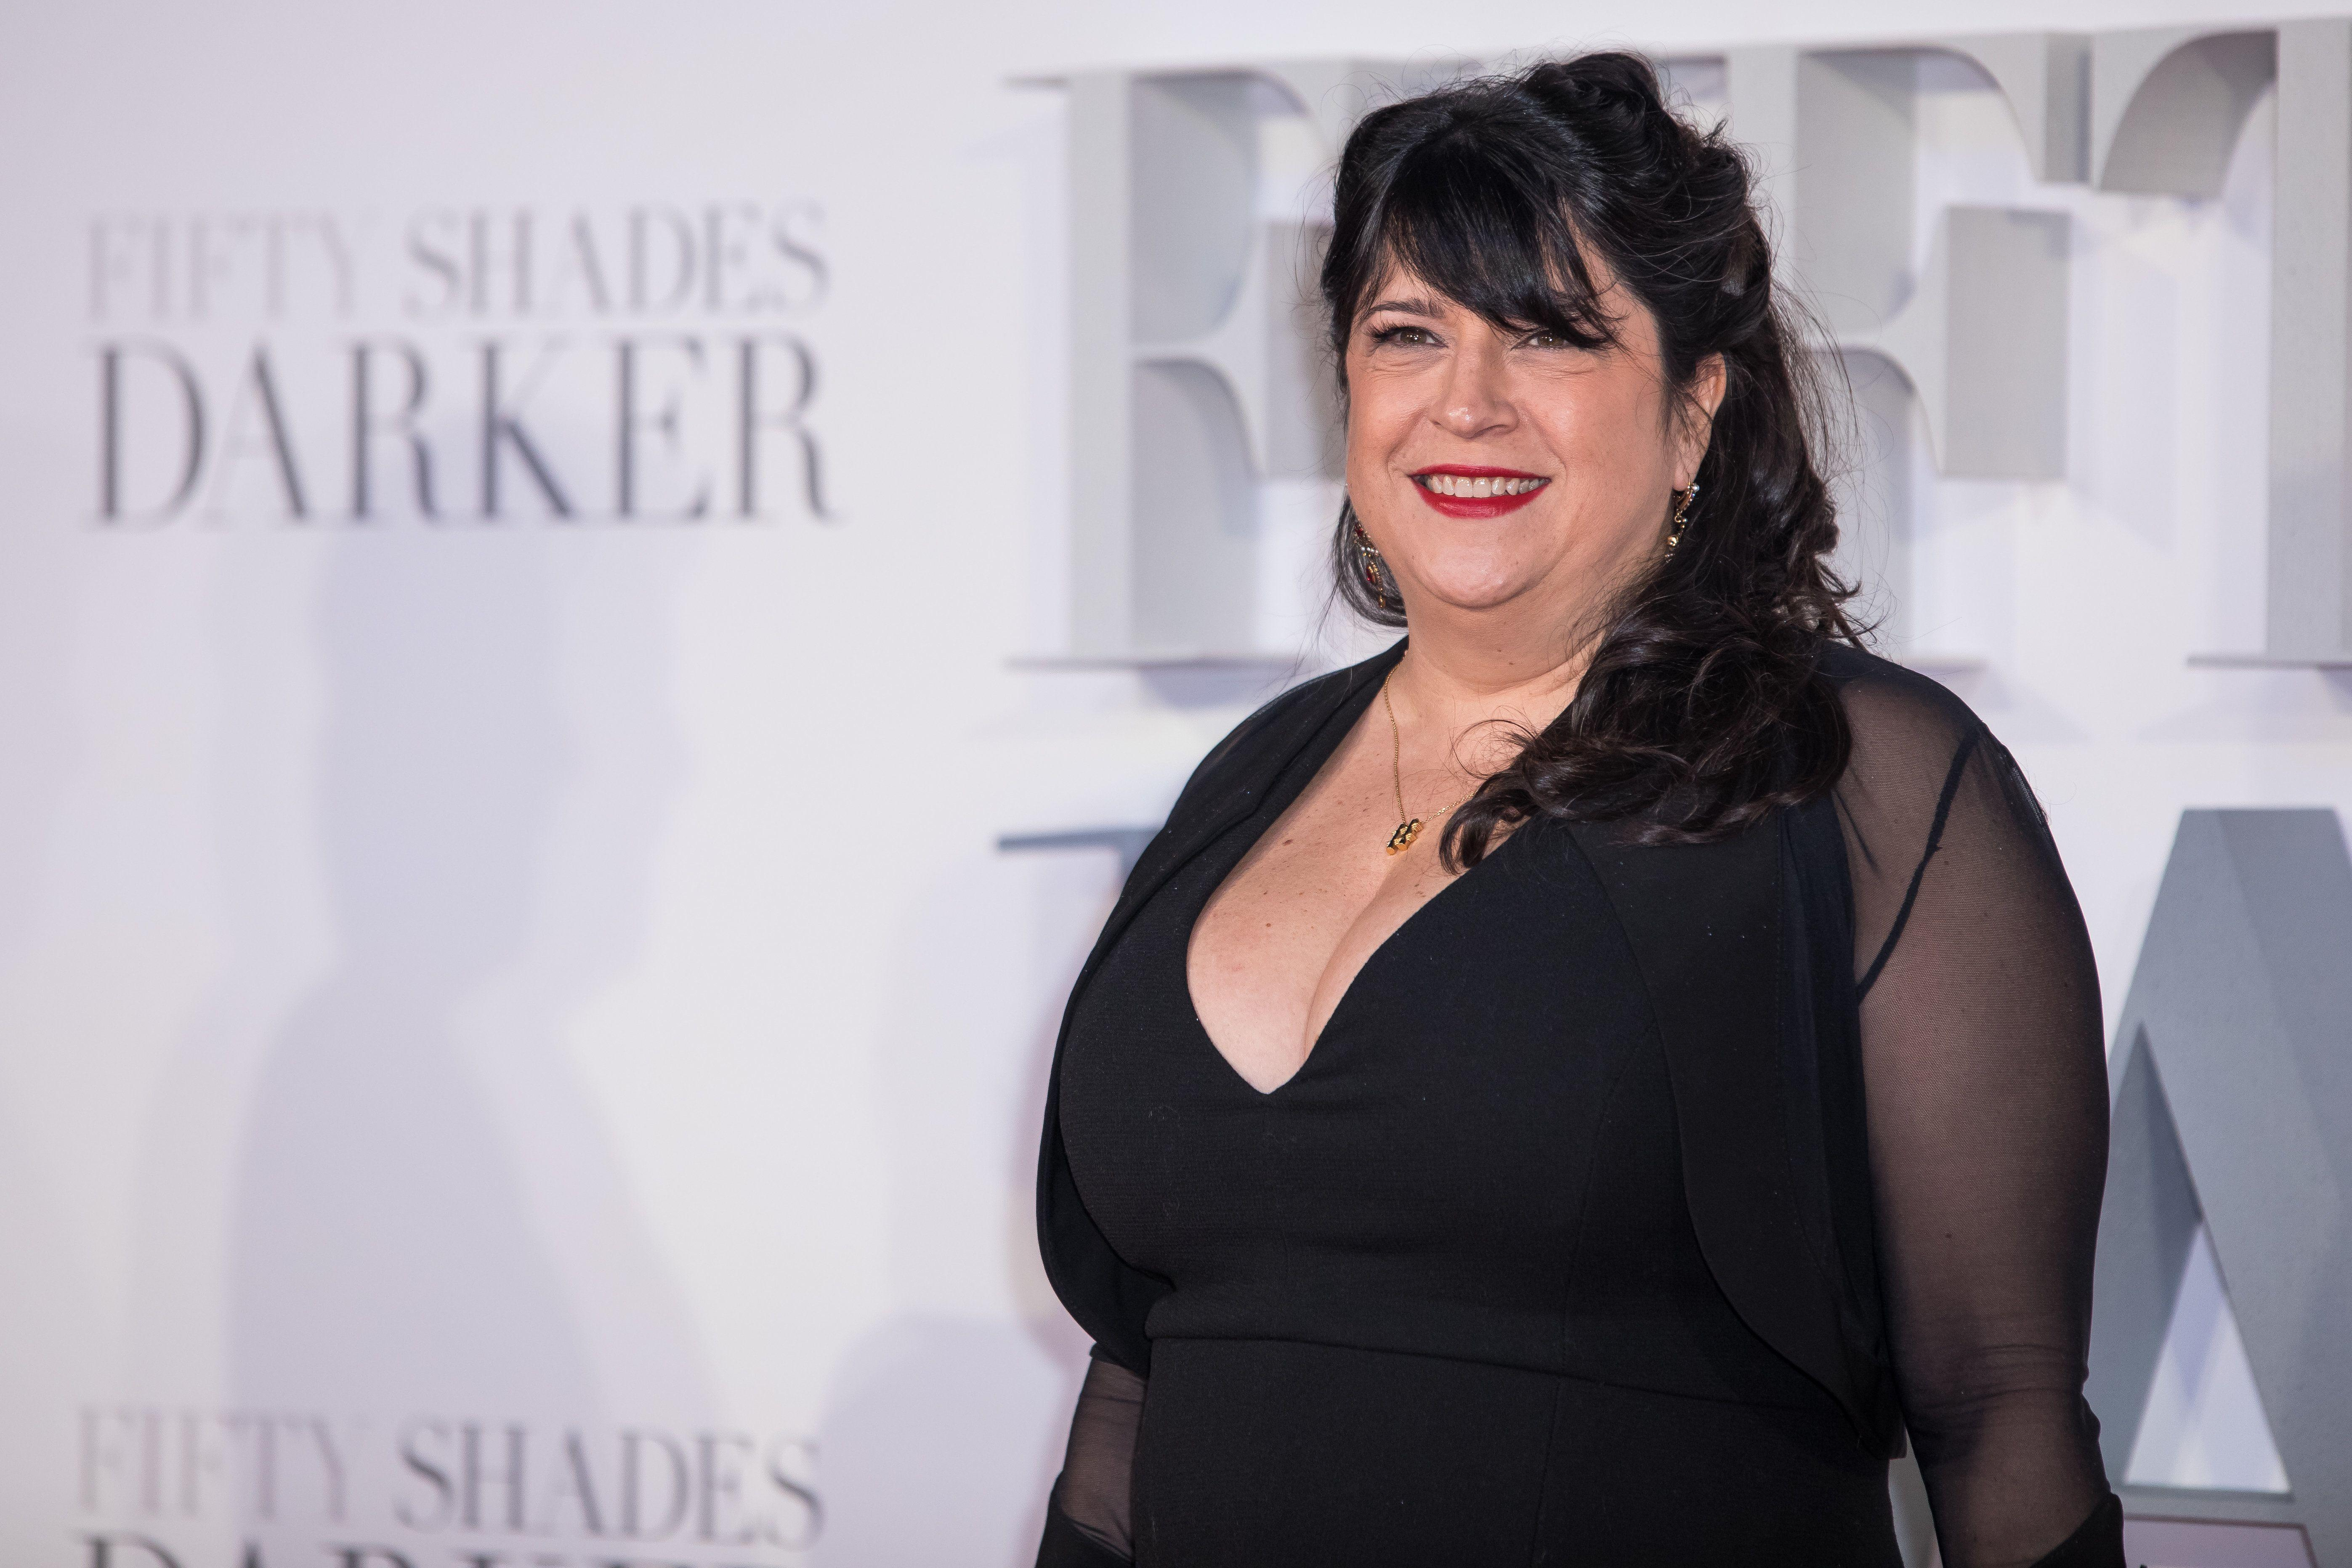 'The Mister' by E.L. James, author of 'Fifty Shades': Reviews